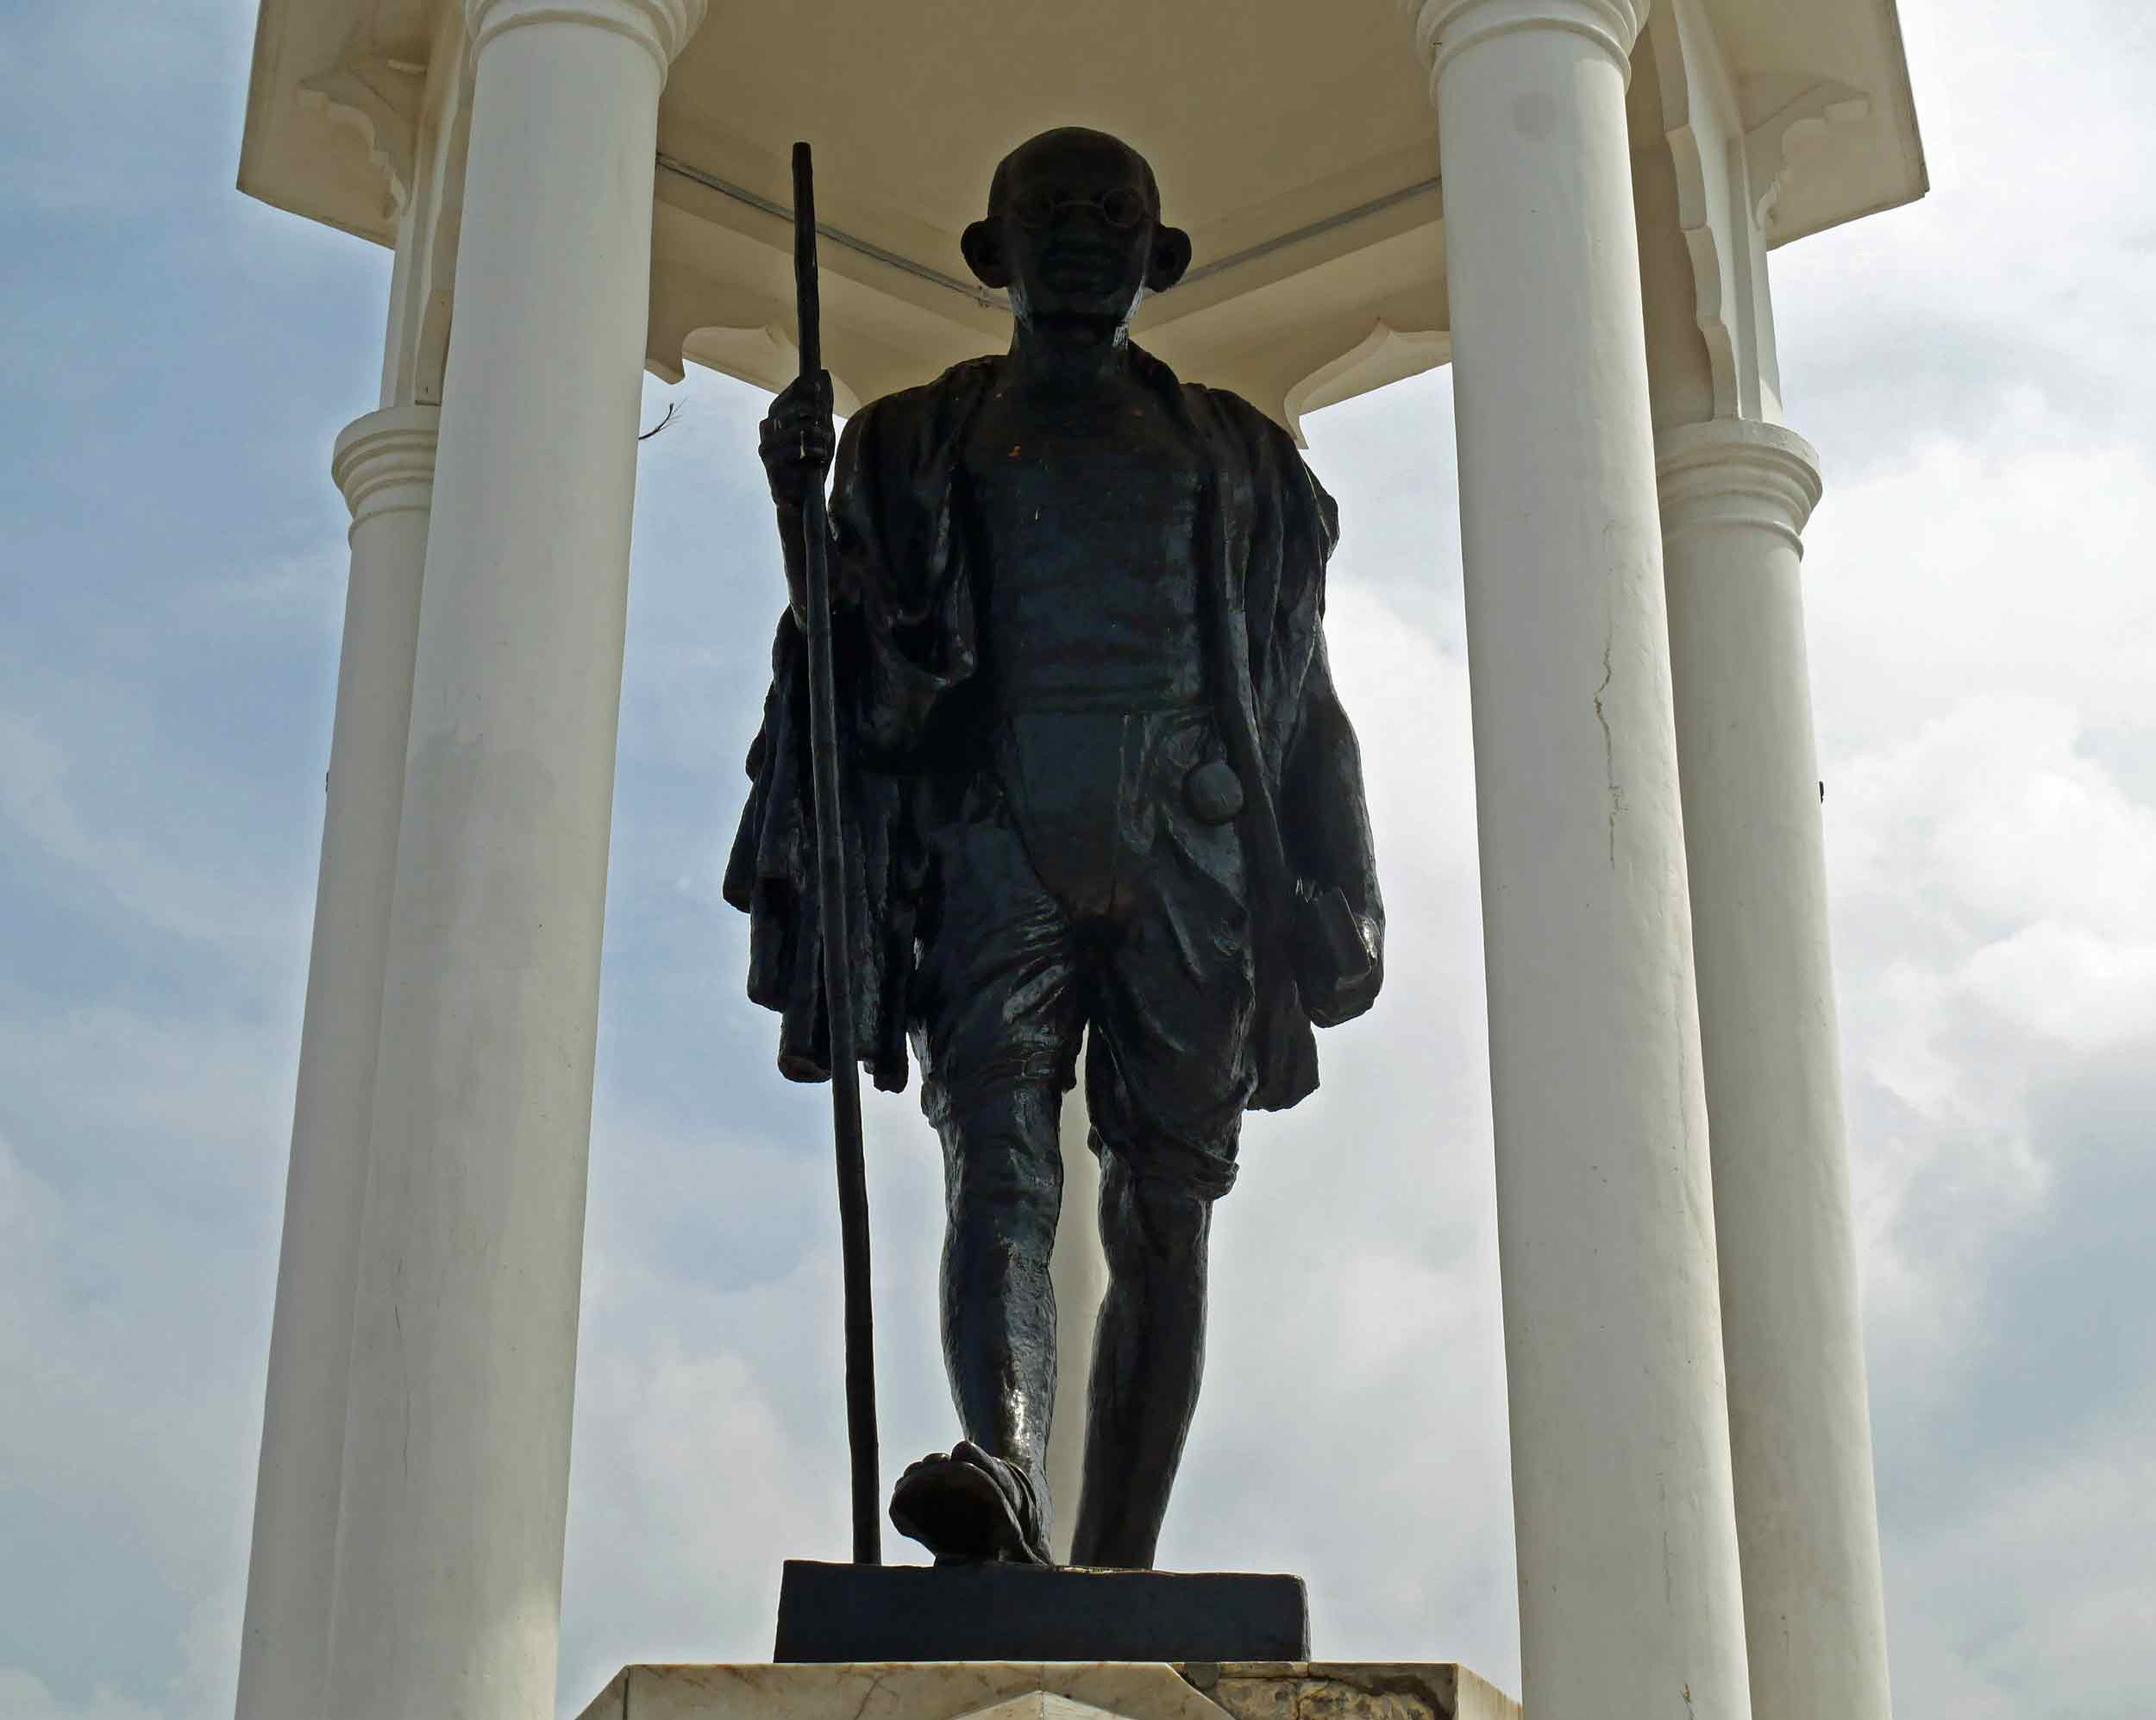 The biggest Mahatma Gandhi statue in Asia is found in Pondicherry, the seaside former French colony (Nov 27).